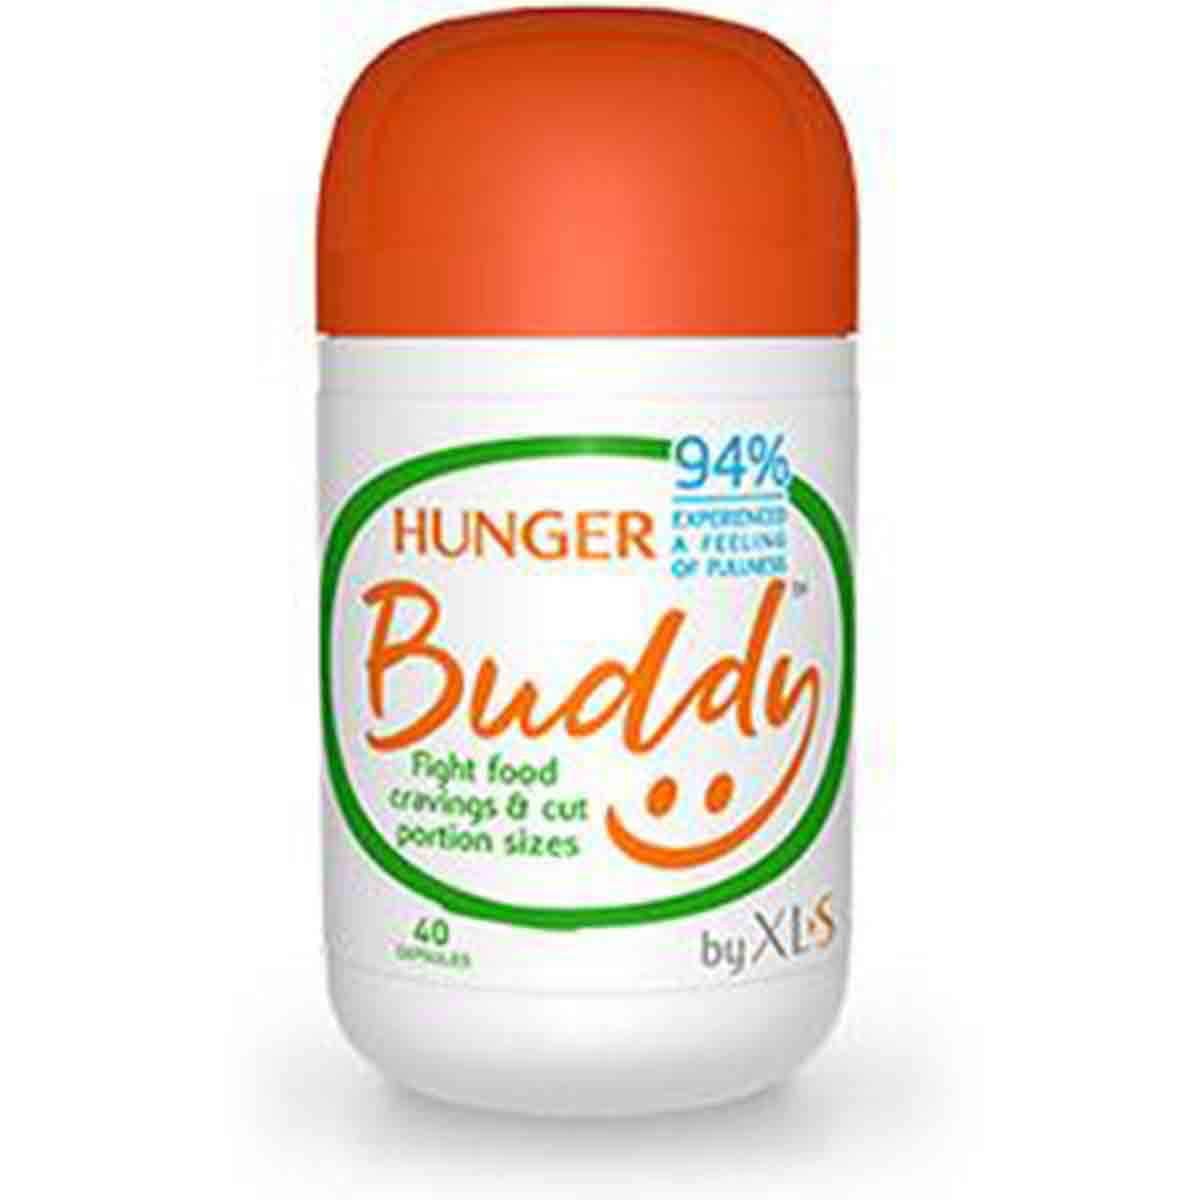 XLS-Medical Hunger Buddy